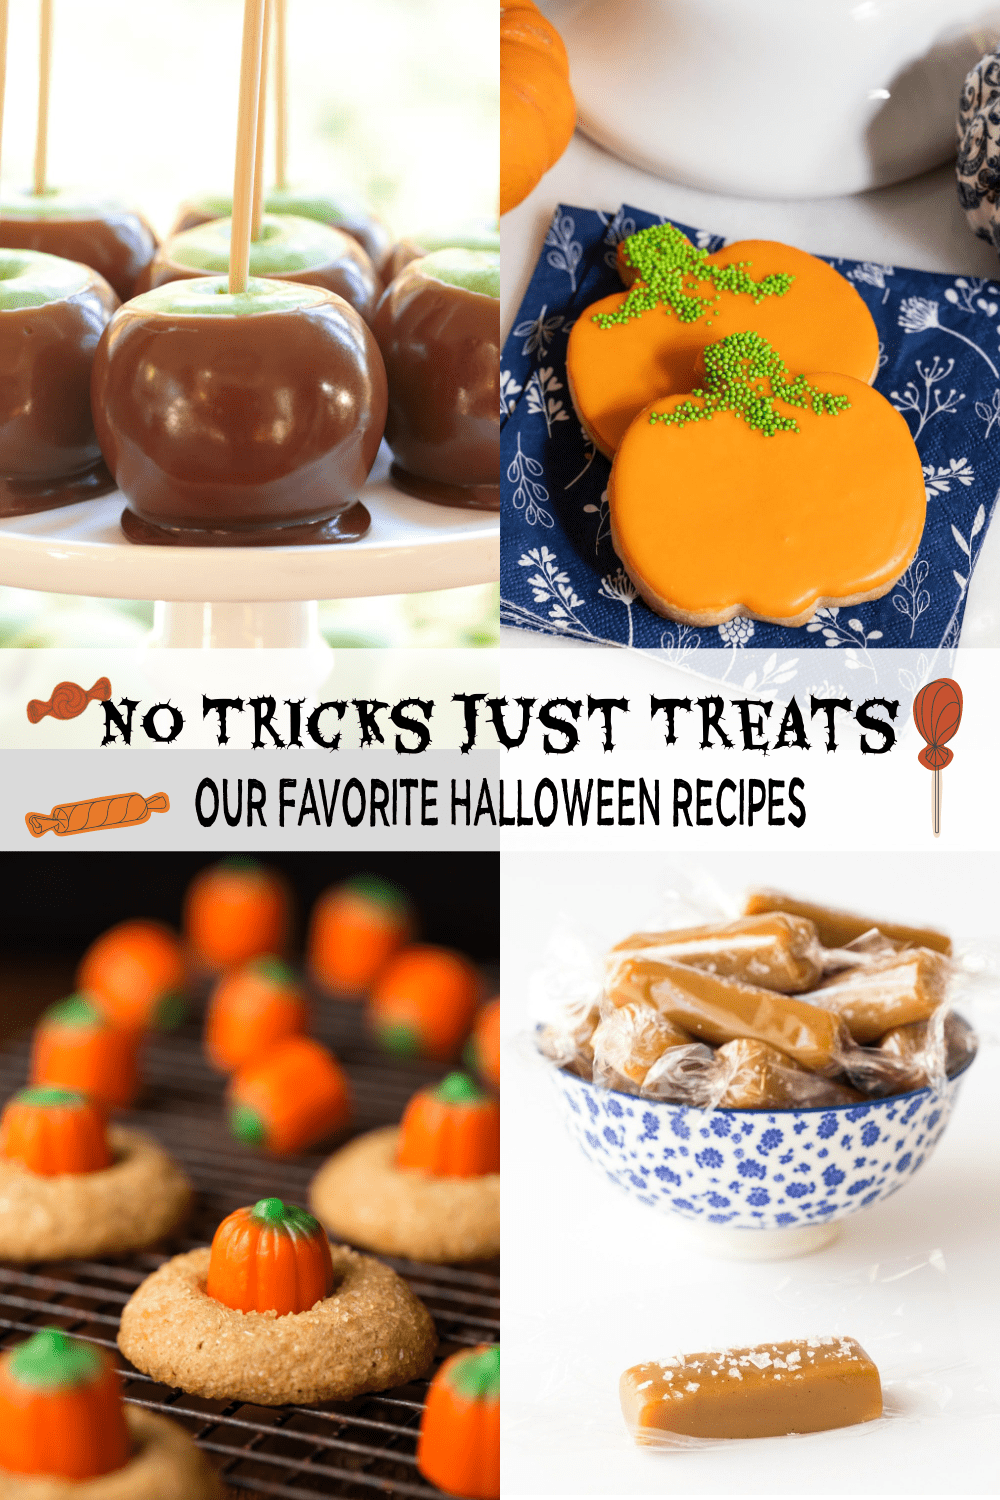 Delicious Halloween Treats for Spooks of All Ages!